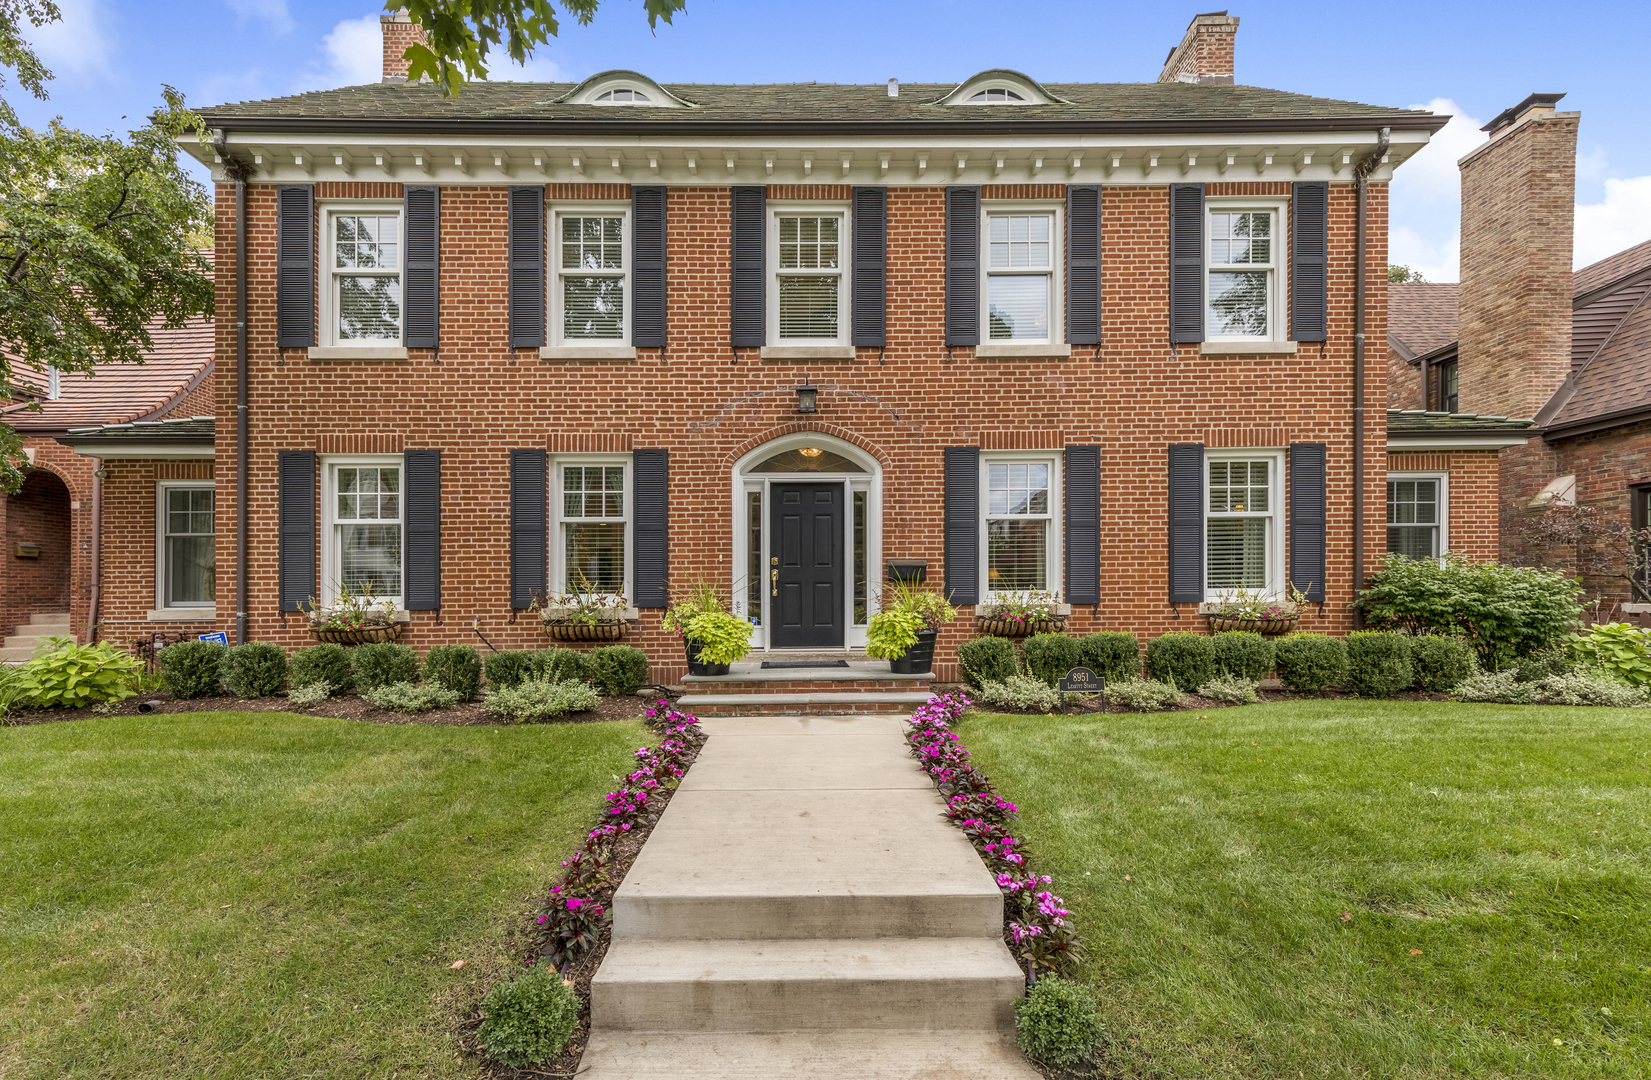 8951 South Leavitt Street, Beverly-Chicago in Cook County, IL 60643 Home for Sale